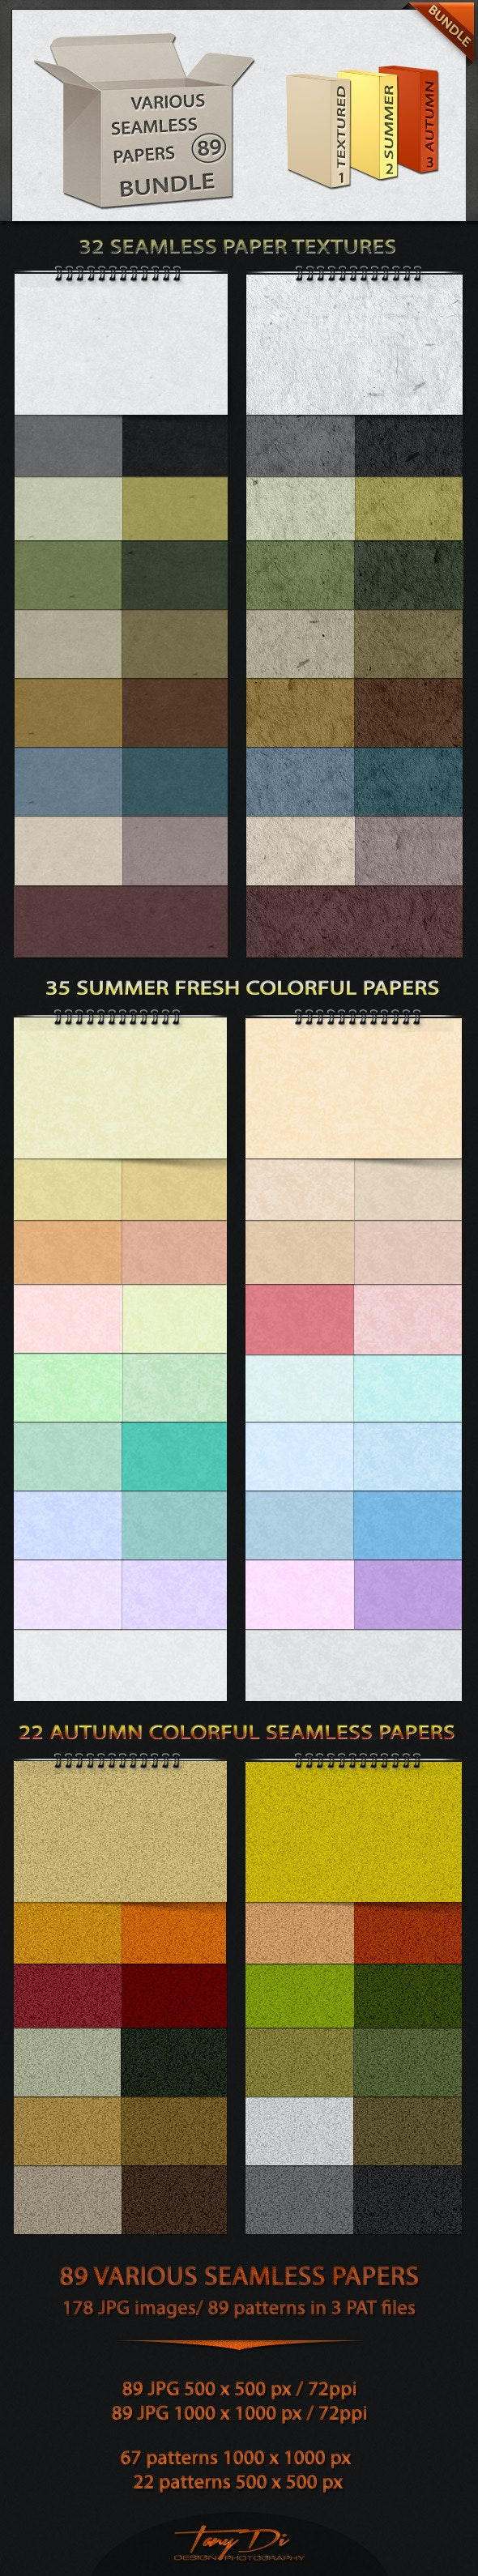 Various Seamless Papers Bundle - Miscellaneous Textures / Fills / Patterns